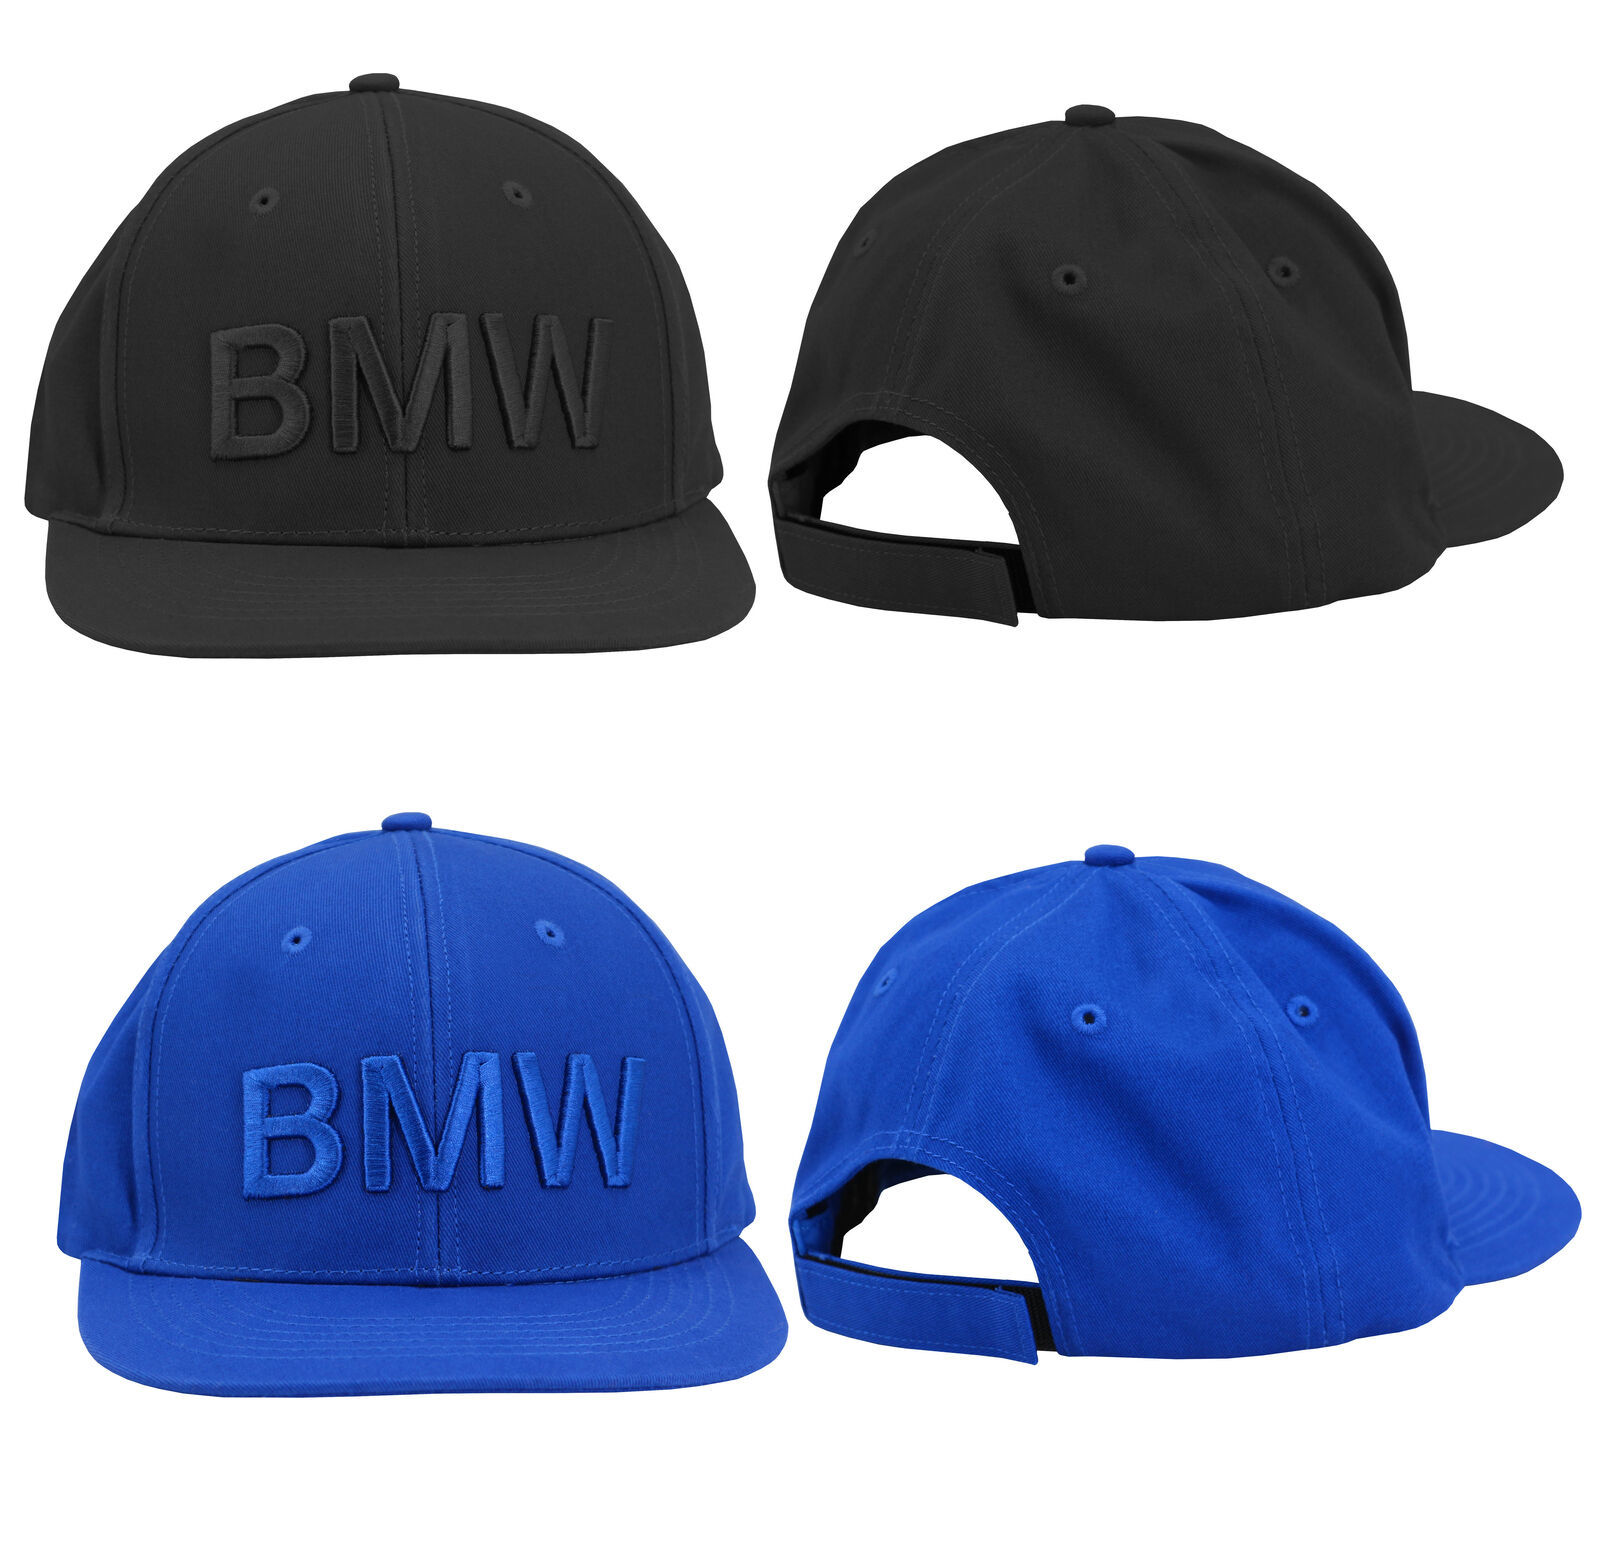 BMW Men's Sport Embroidered Baseball Hat Solid Cotton Strapback Cap BN8A016